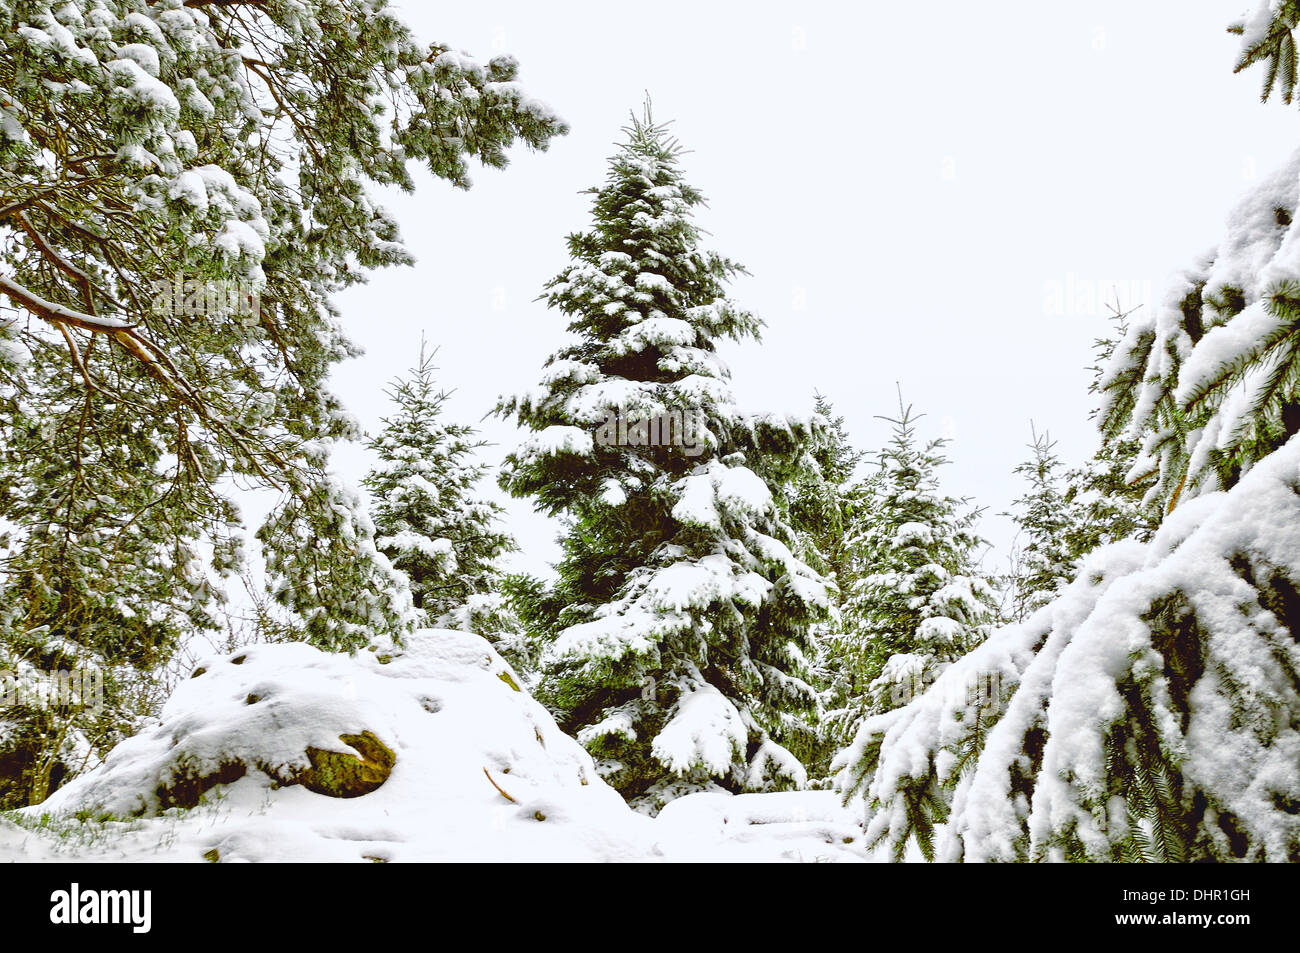 white forest of pines and other conifers - Stock Image